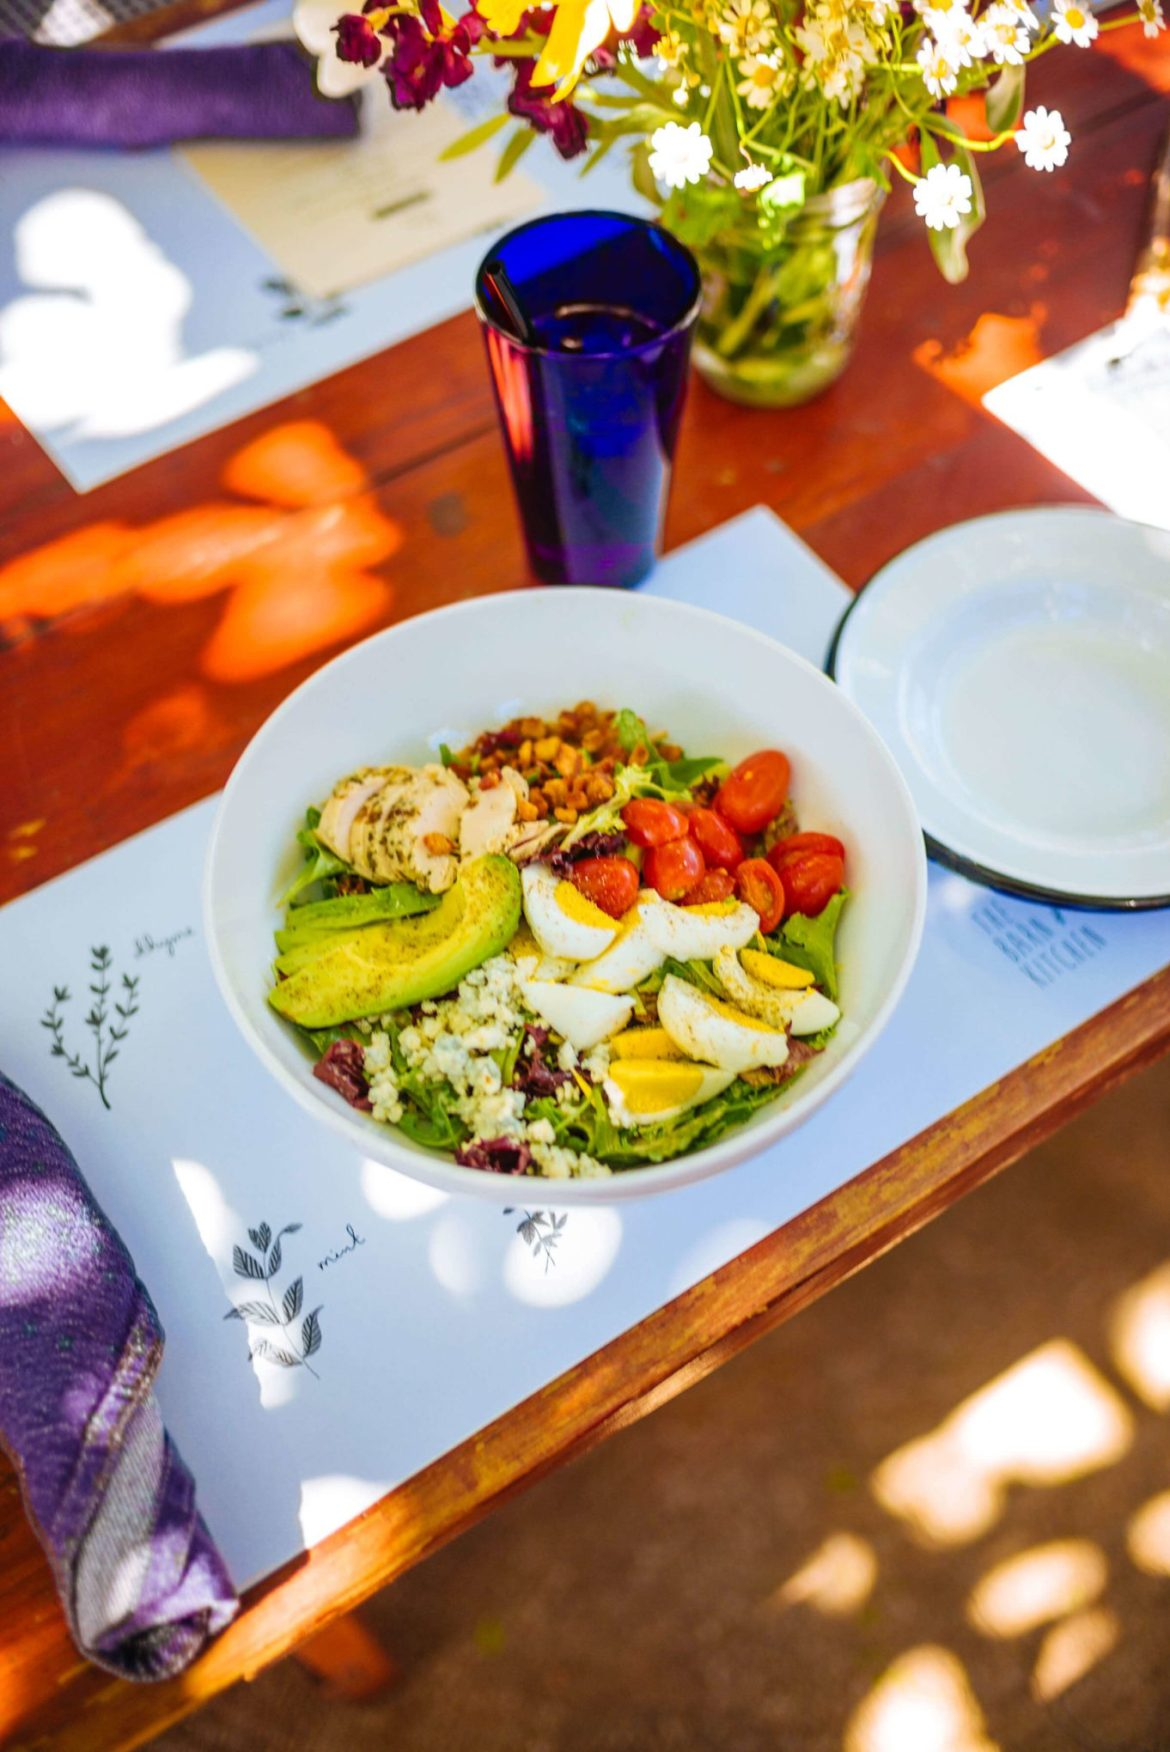 You'll find the best brunch in Palm Springs at this hidden gem the Barn Kitchen at Sparrows Lodge in Palm Springs, thetasteedit recommends the cobb salad!